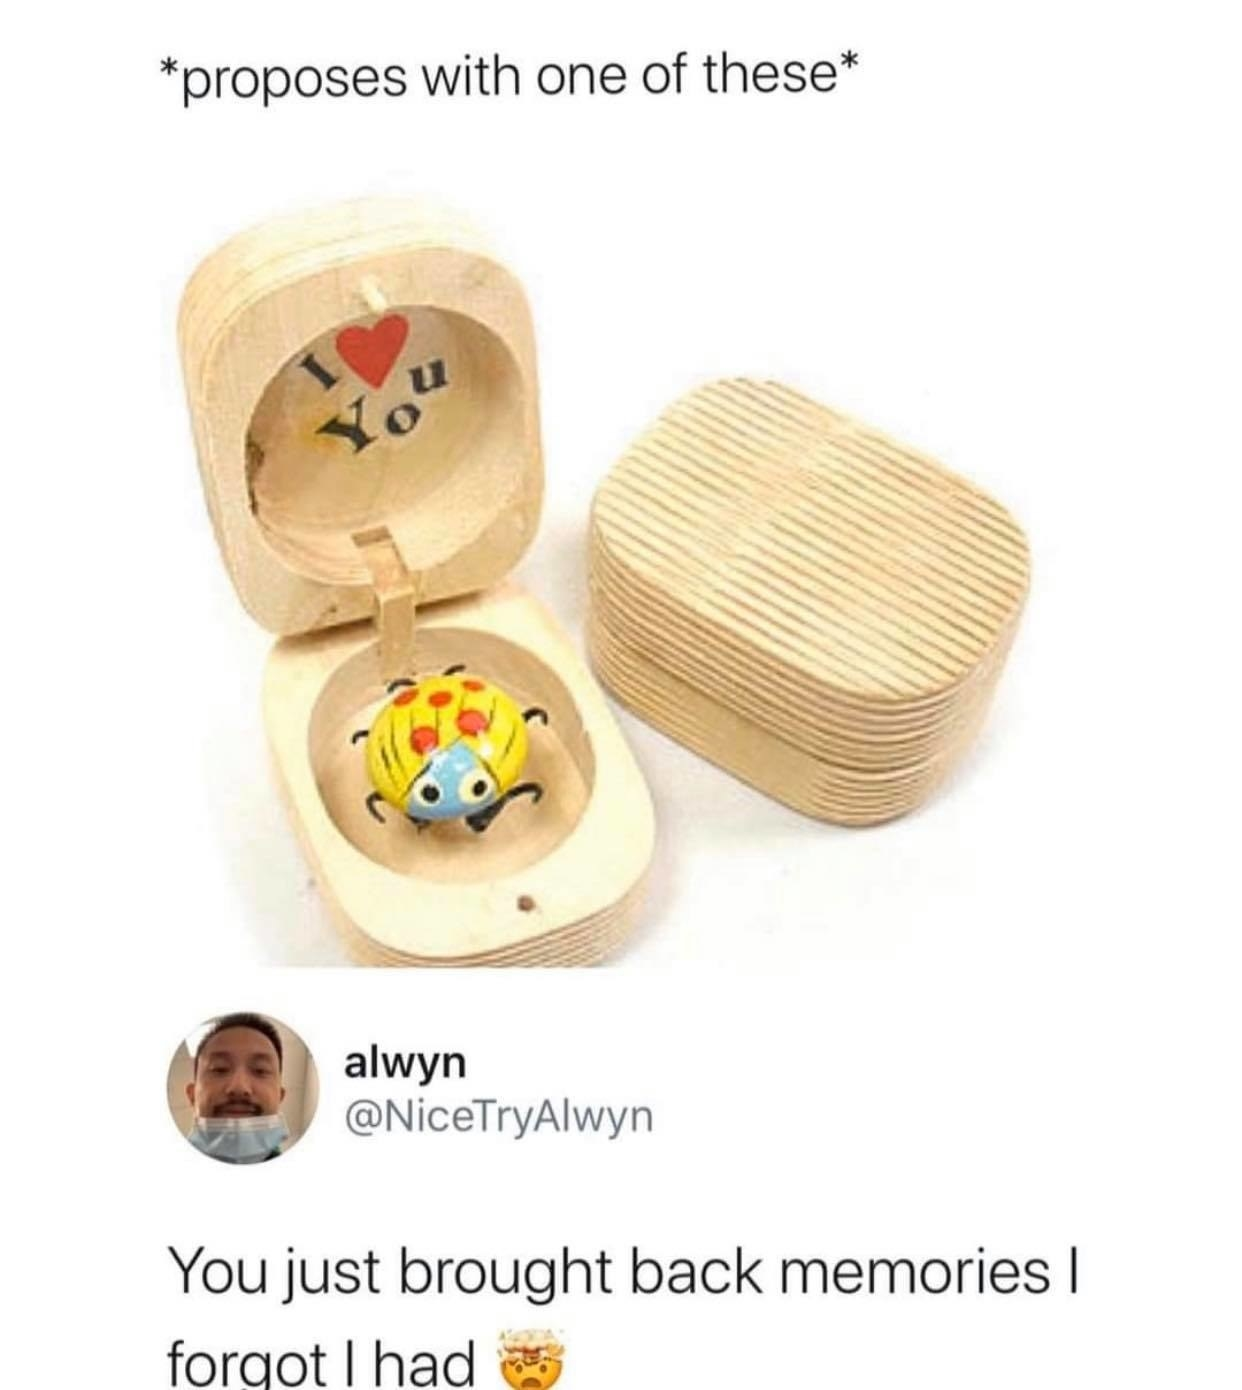 those wooden boxes with ladybugs inside them